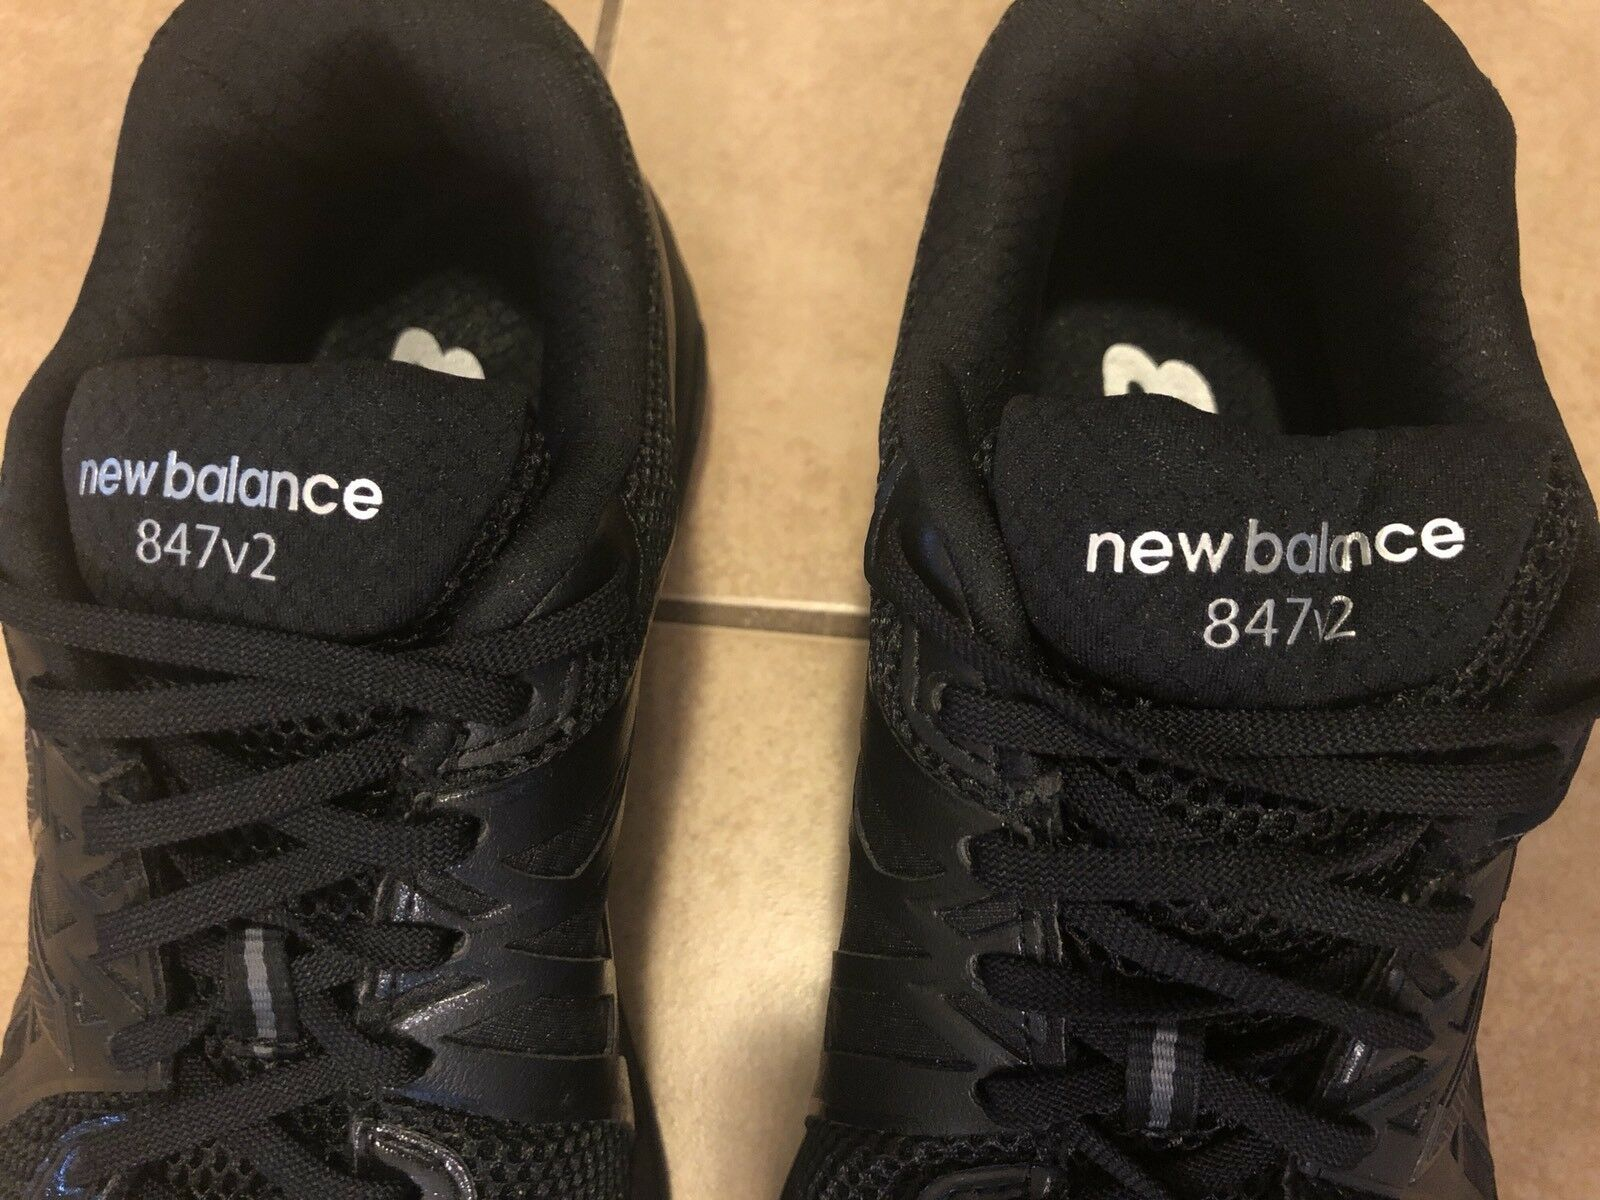 New Balance 847V2 MW847BK2 Men's Size 9 Extra Extra Extra Wide shoes Black Assembled in USA 32b069